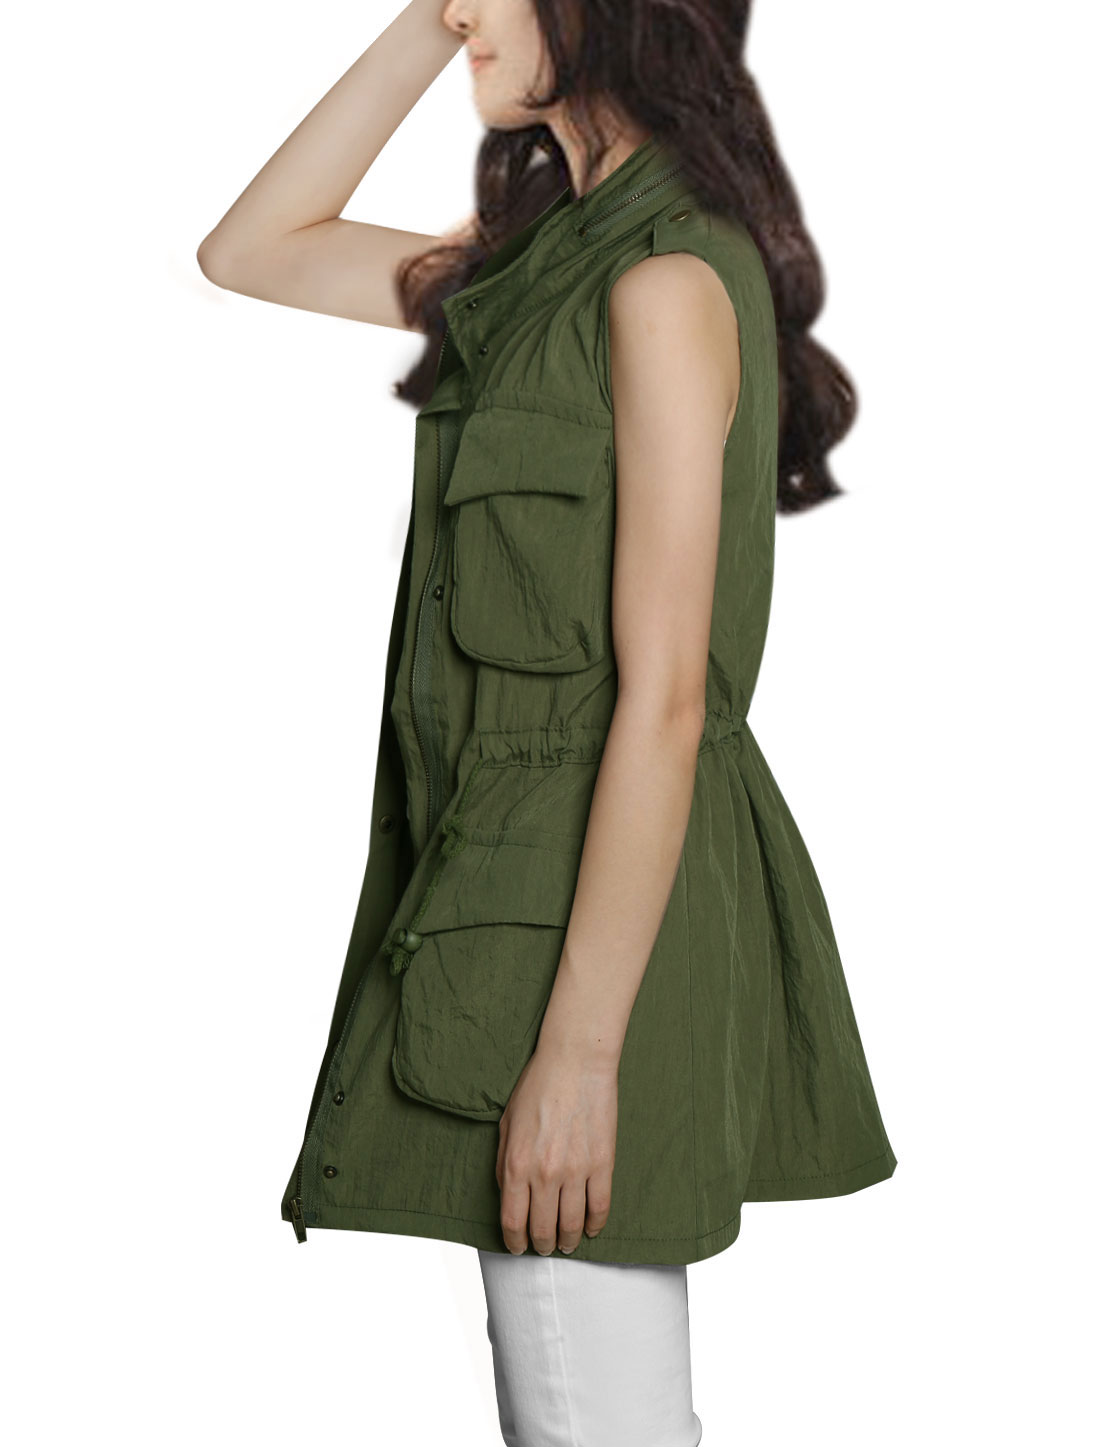 Woman Single Breasted Multi Pockets Button Epaulet Sleevless Vest Army Green S